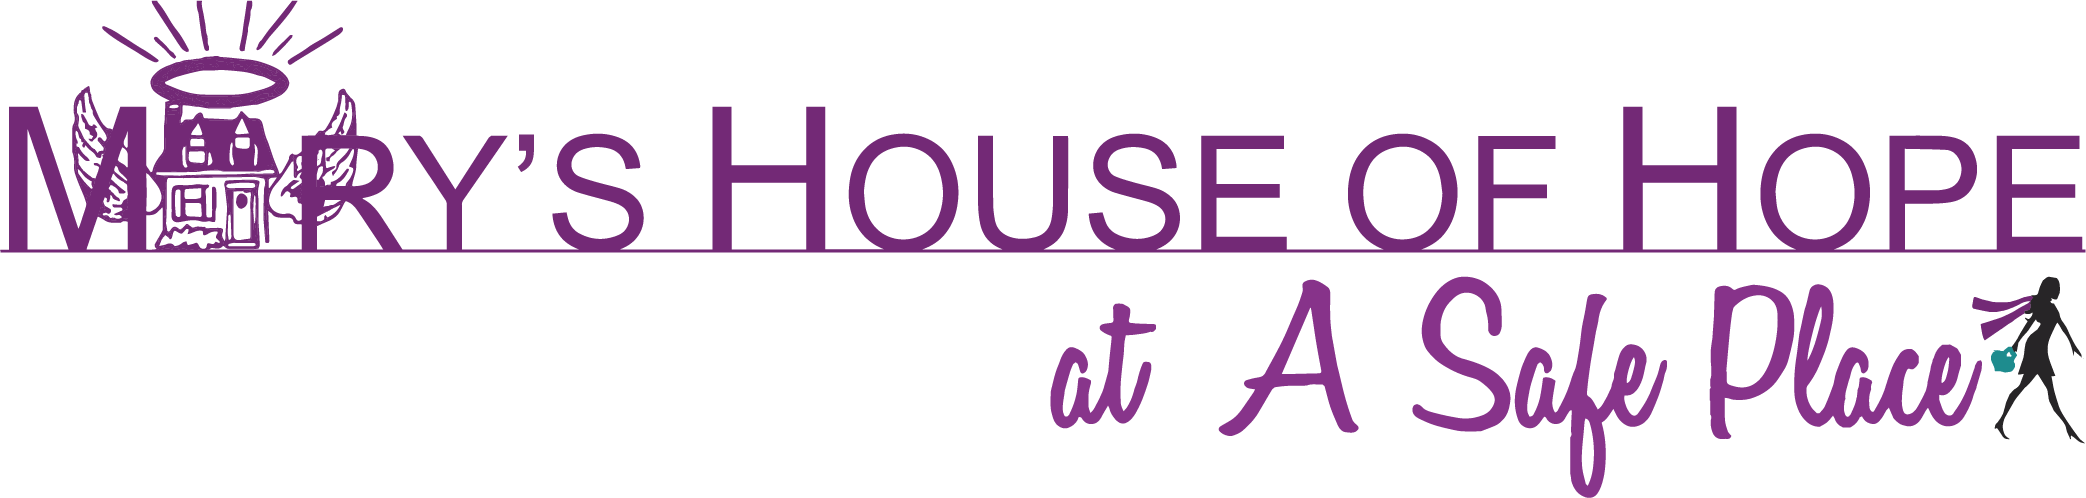 Mary's House of Hope at A Safe Place logo